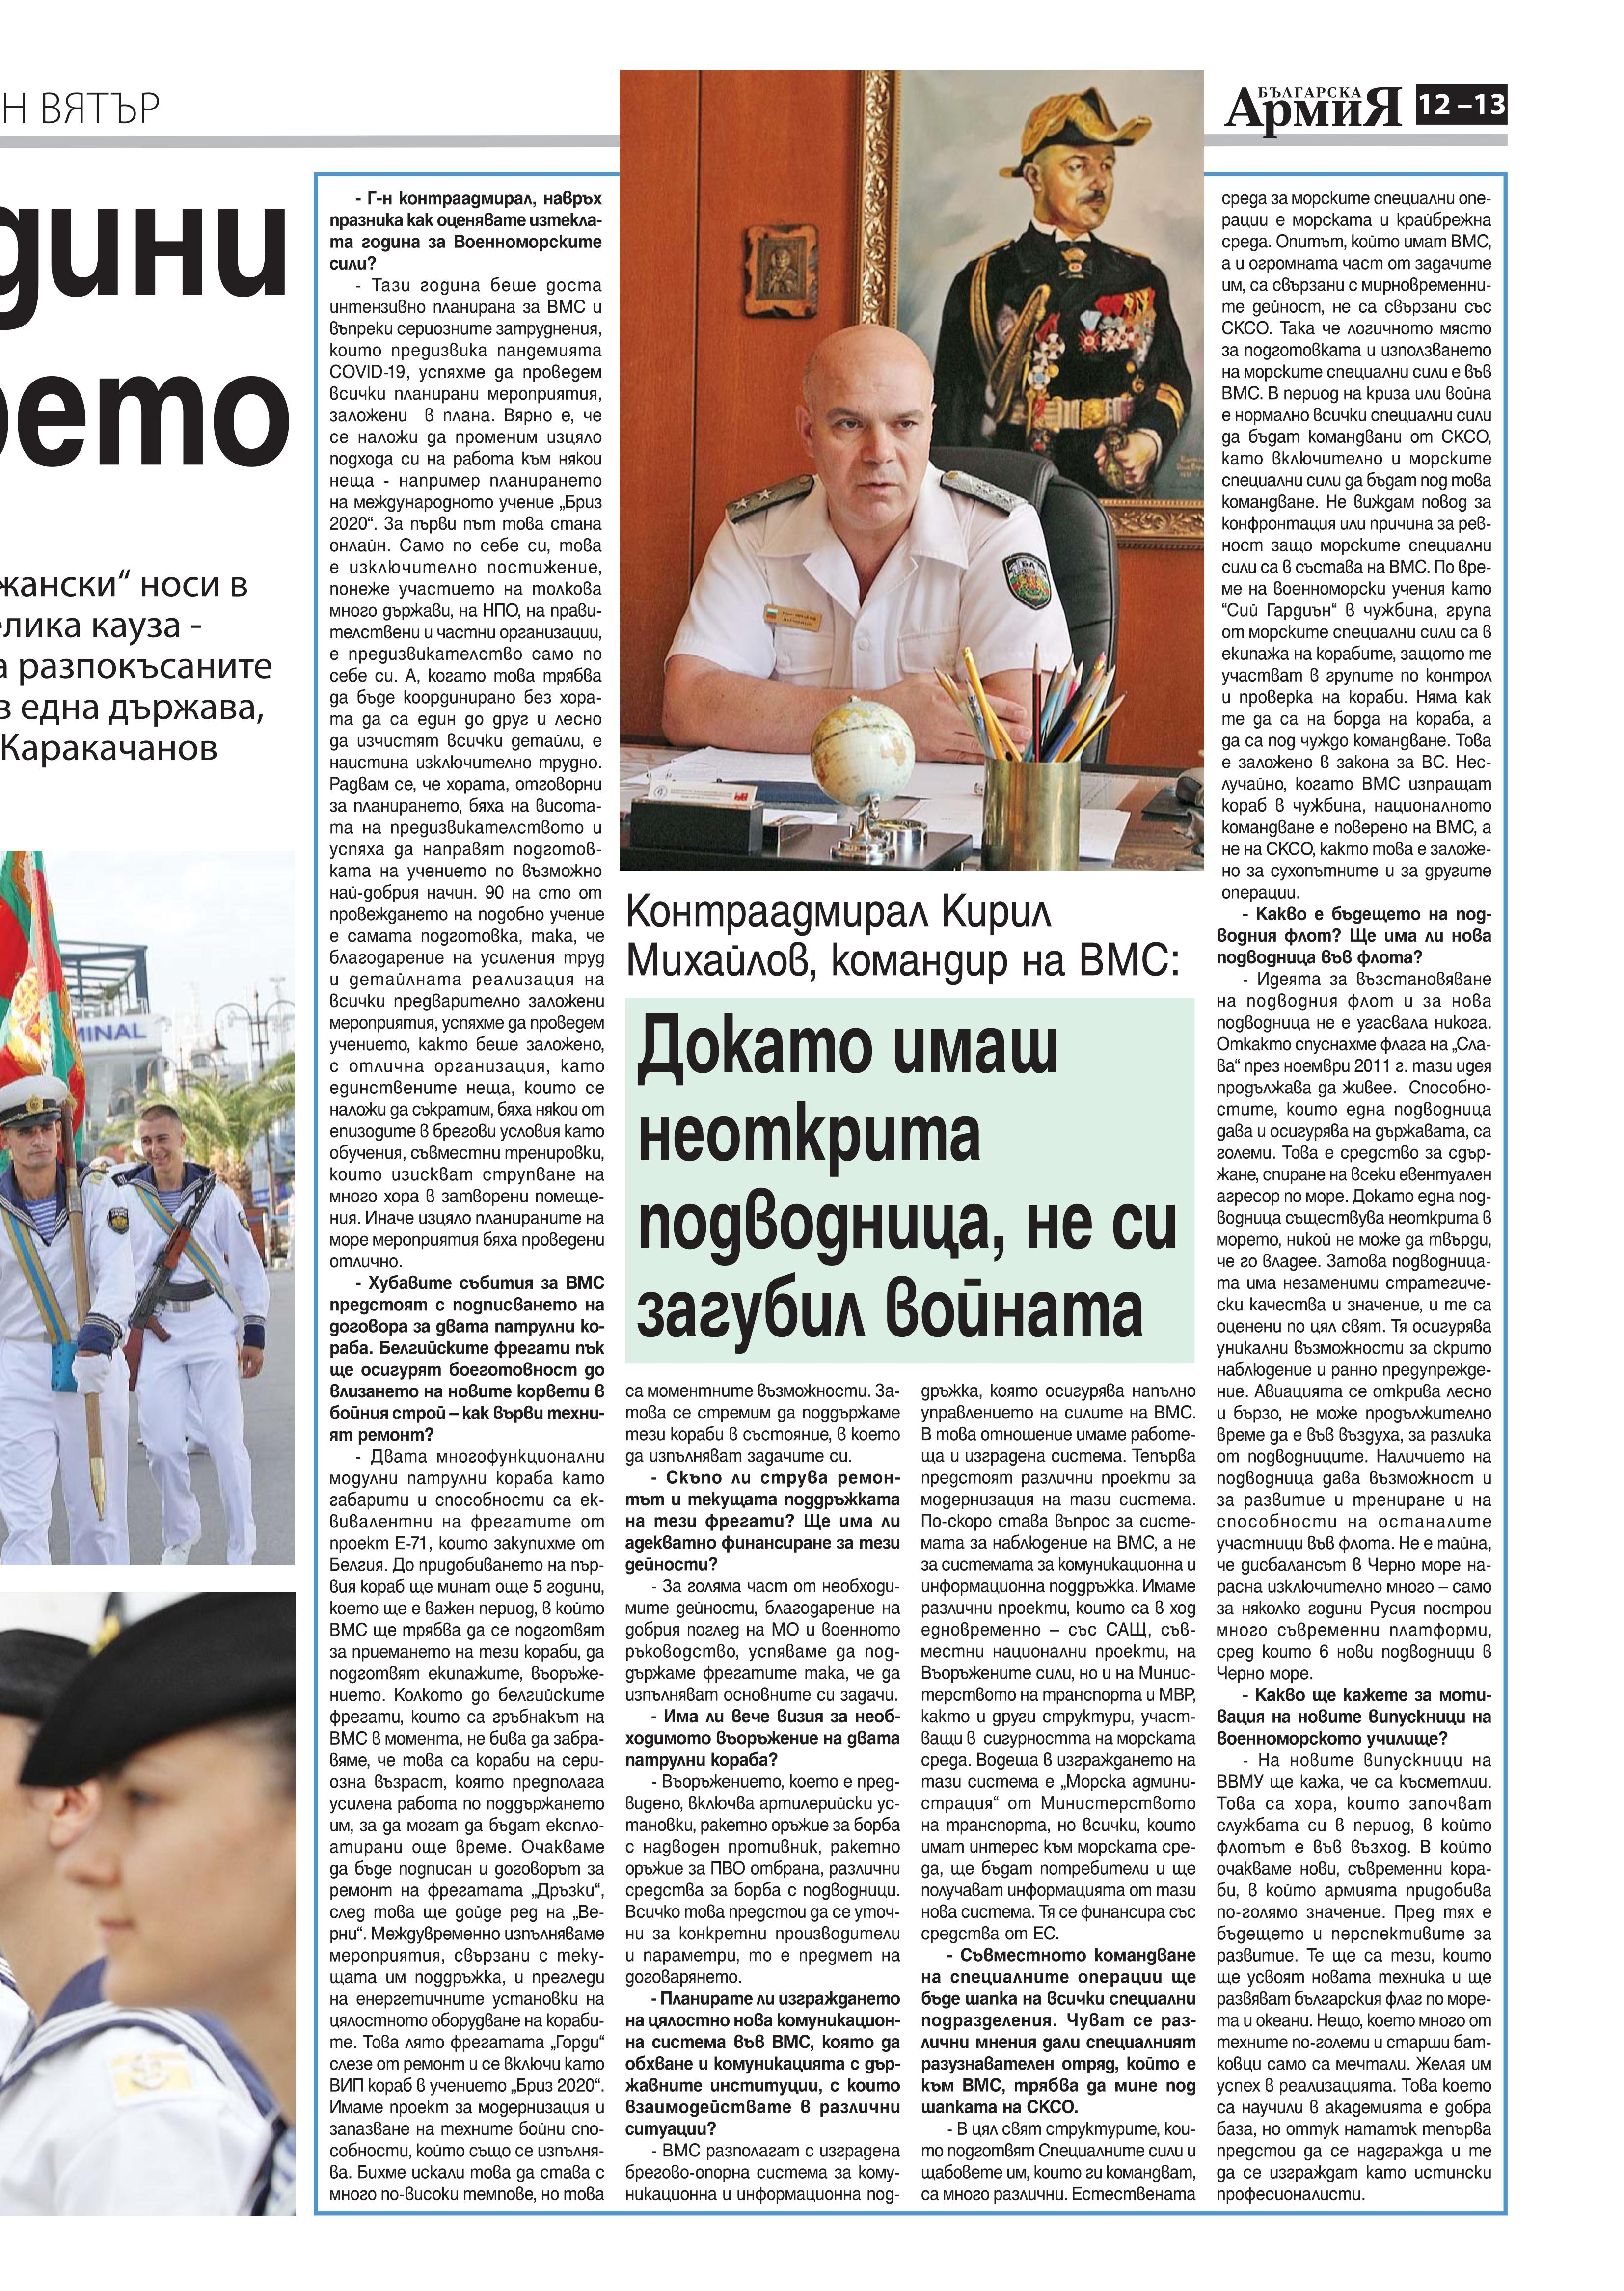 https://armymedia.bg/wp-content/uploads/2015/06/13.page1_-150.jpg